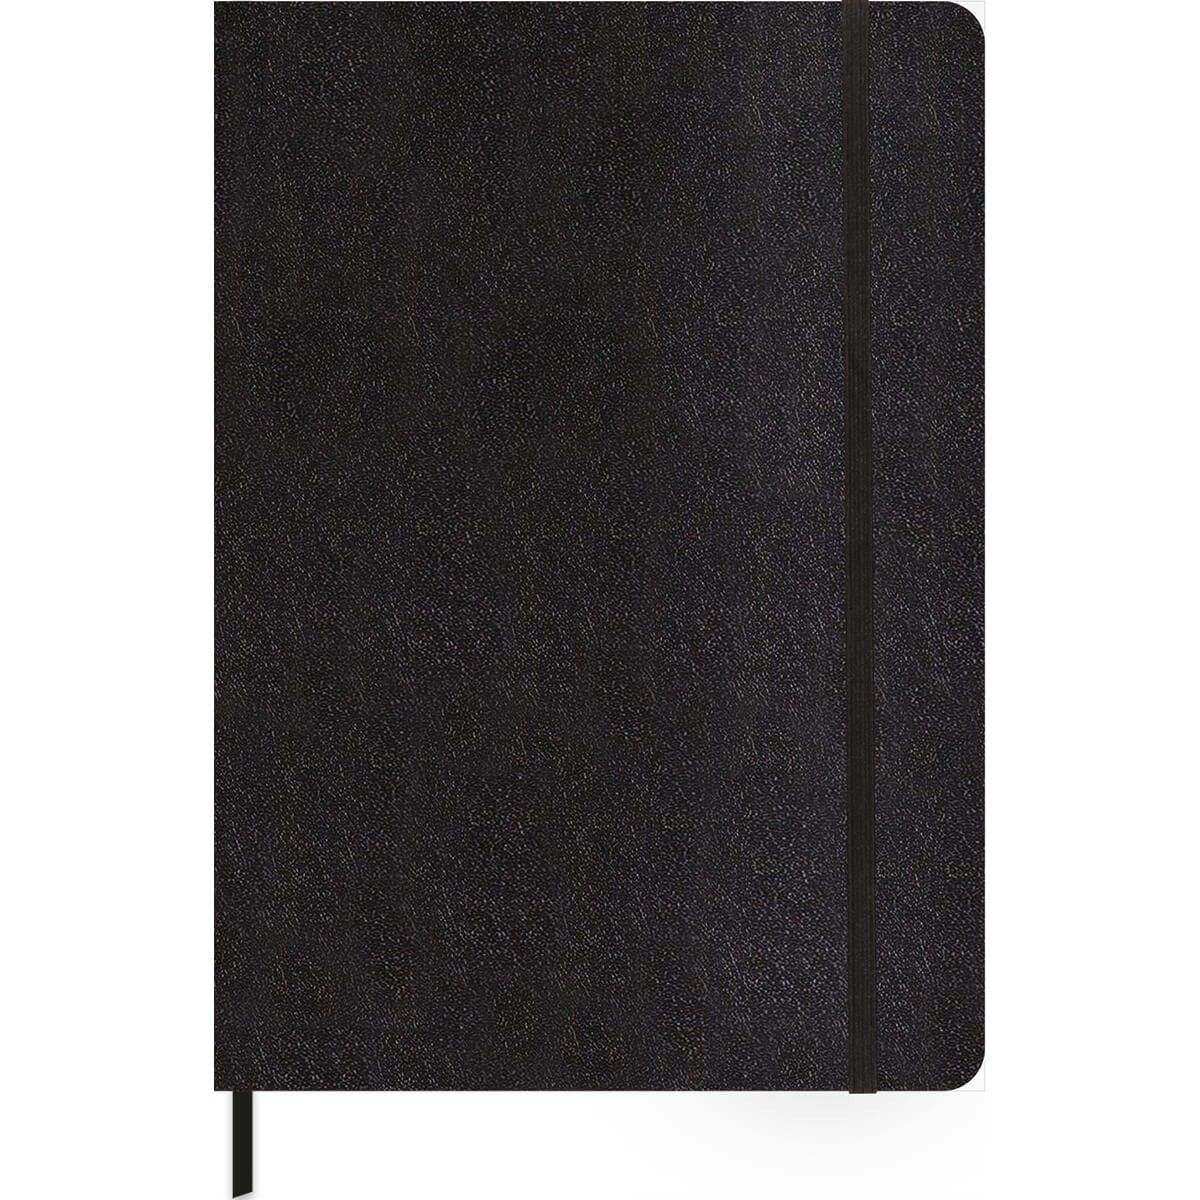 Caderno Executivo Cambridge Preto M Pautado